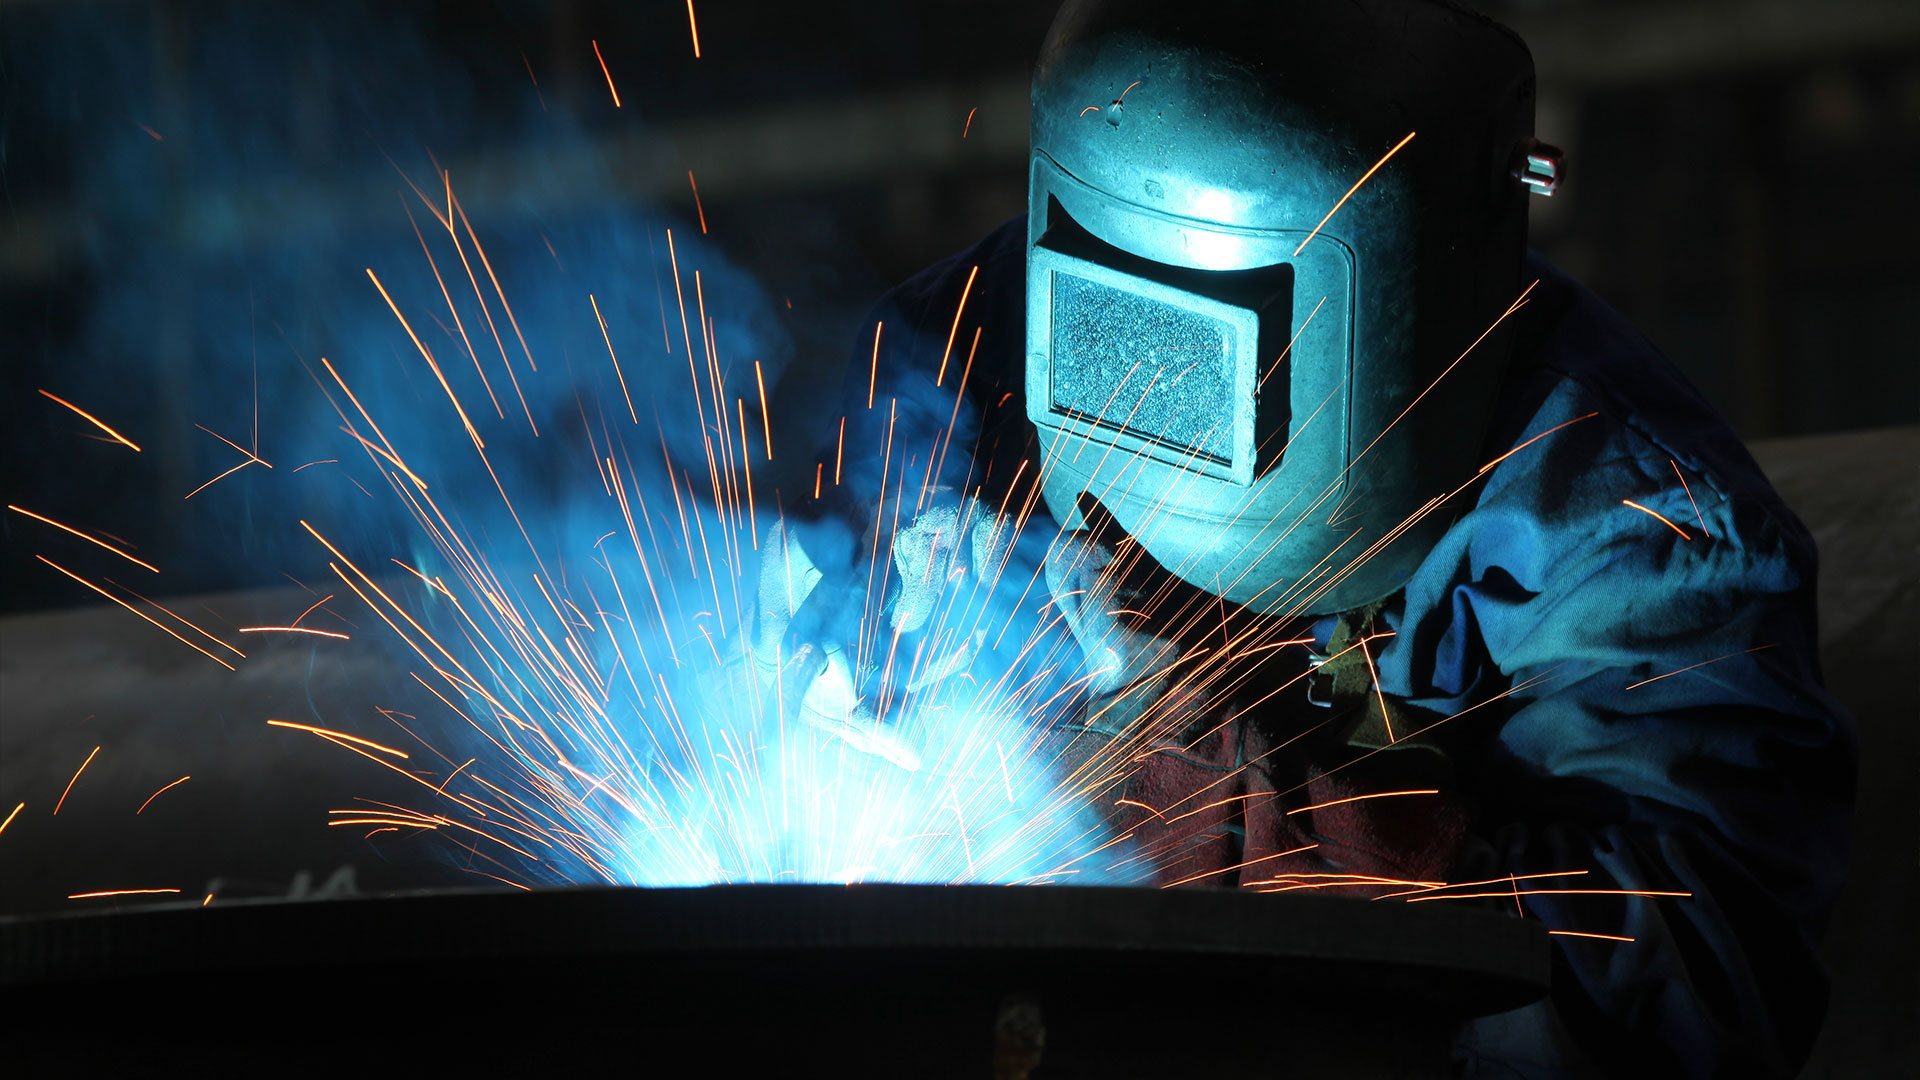 Richmond Welder and Welding